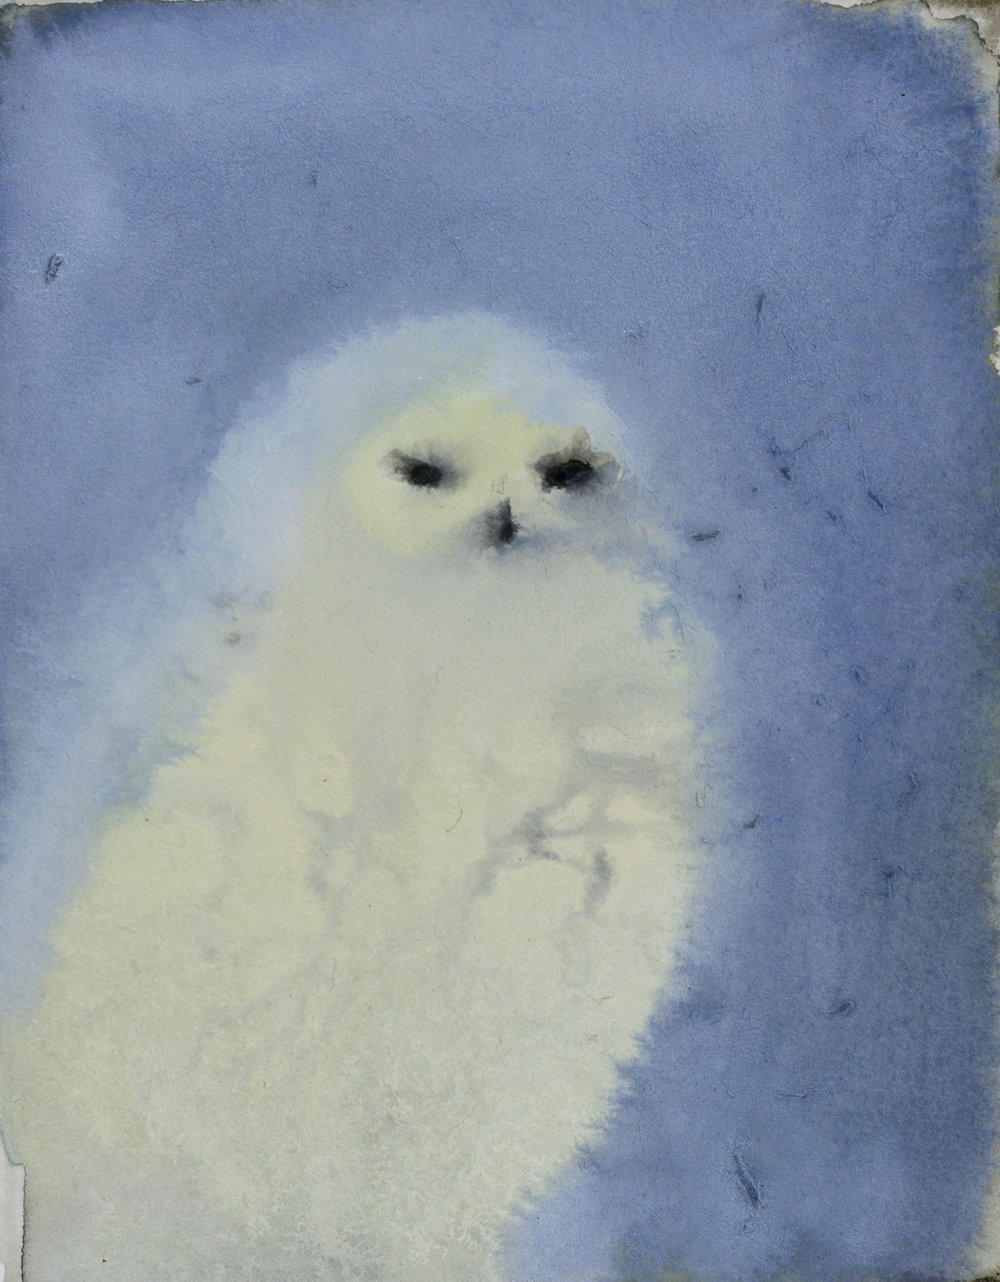 Rebecca_Kinkead_Snowy Owl (on Blue)_4x3 inset on 11 x 7.5.jpg